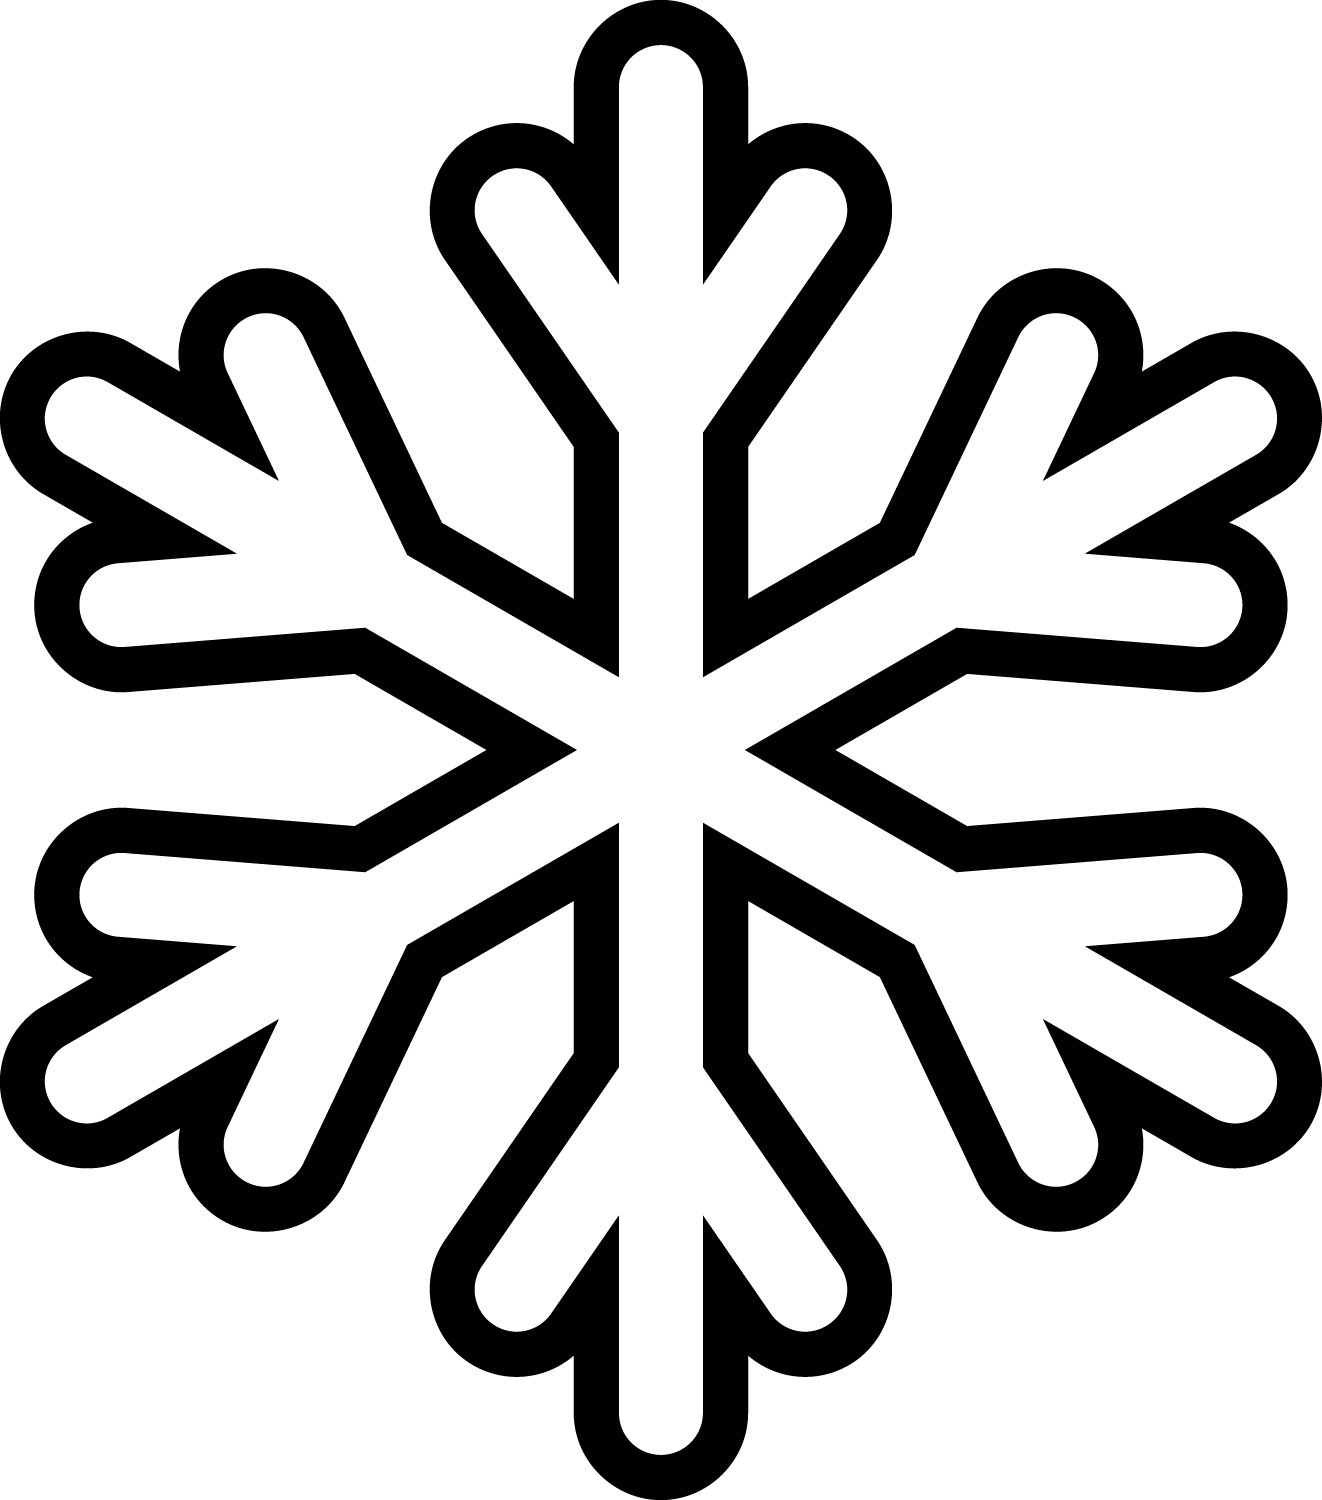 snowflake | Posts Related To Snowflake Cut Out Patterns Printable ...